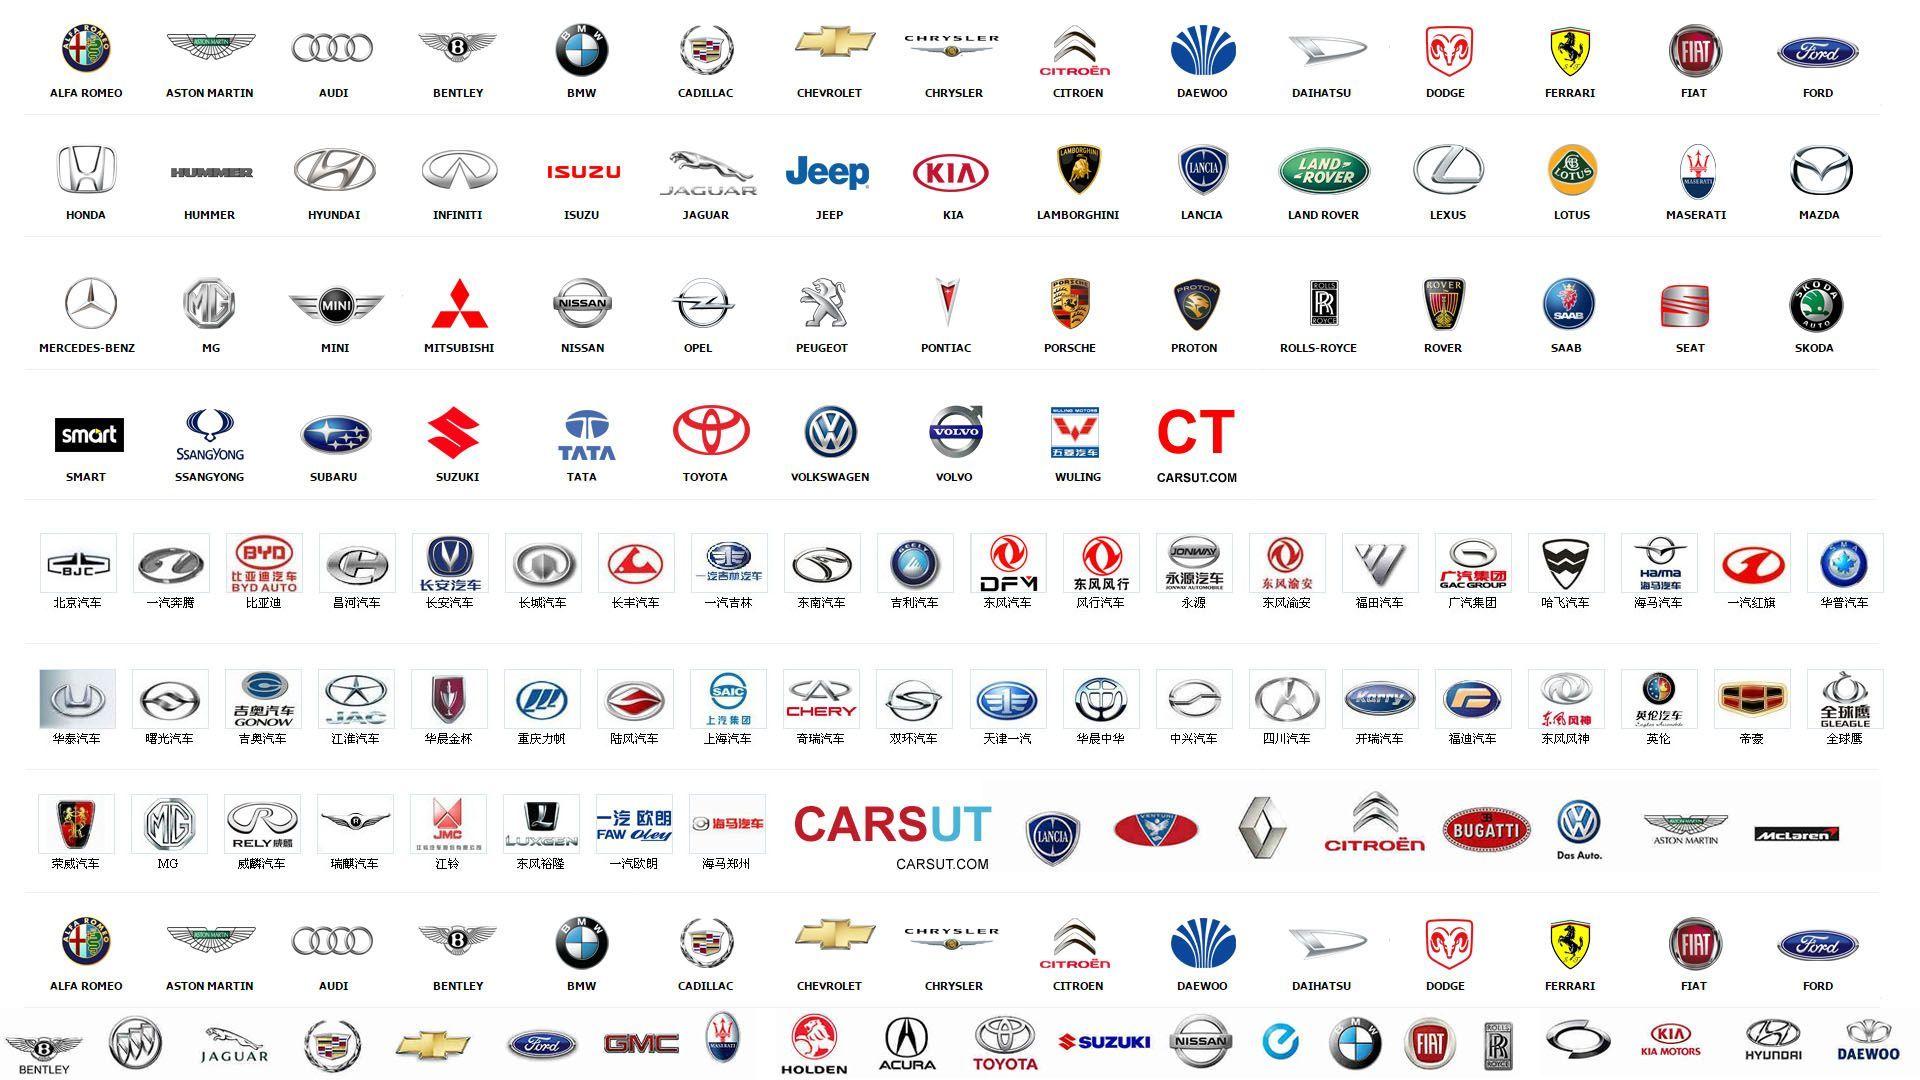 3627c93e1 Pin by Richard Baumann on Names Brands | All car logos, Car logos ...